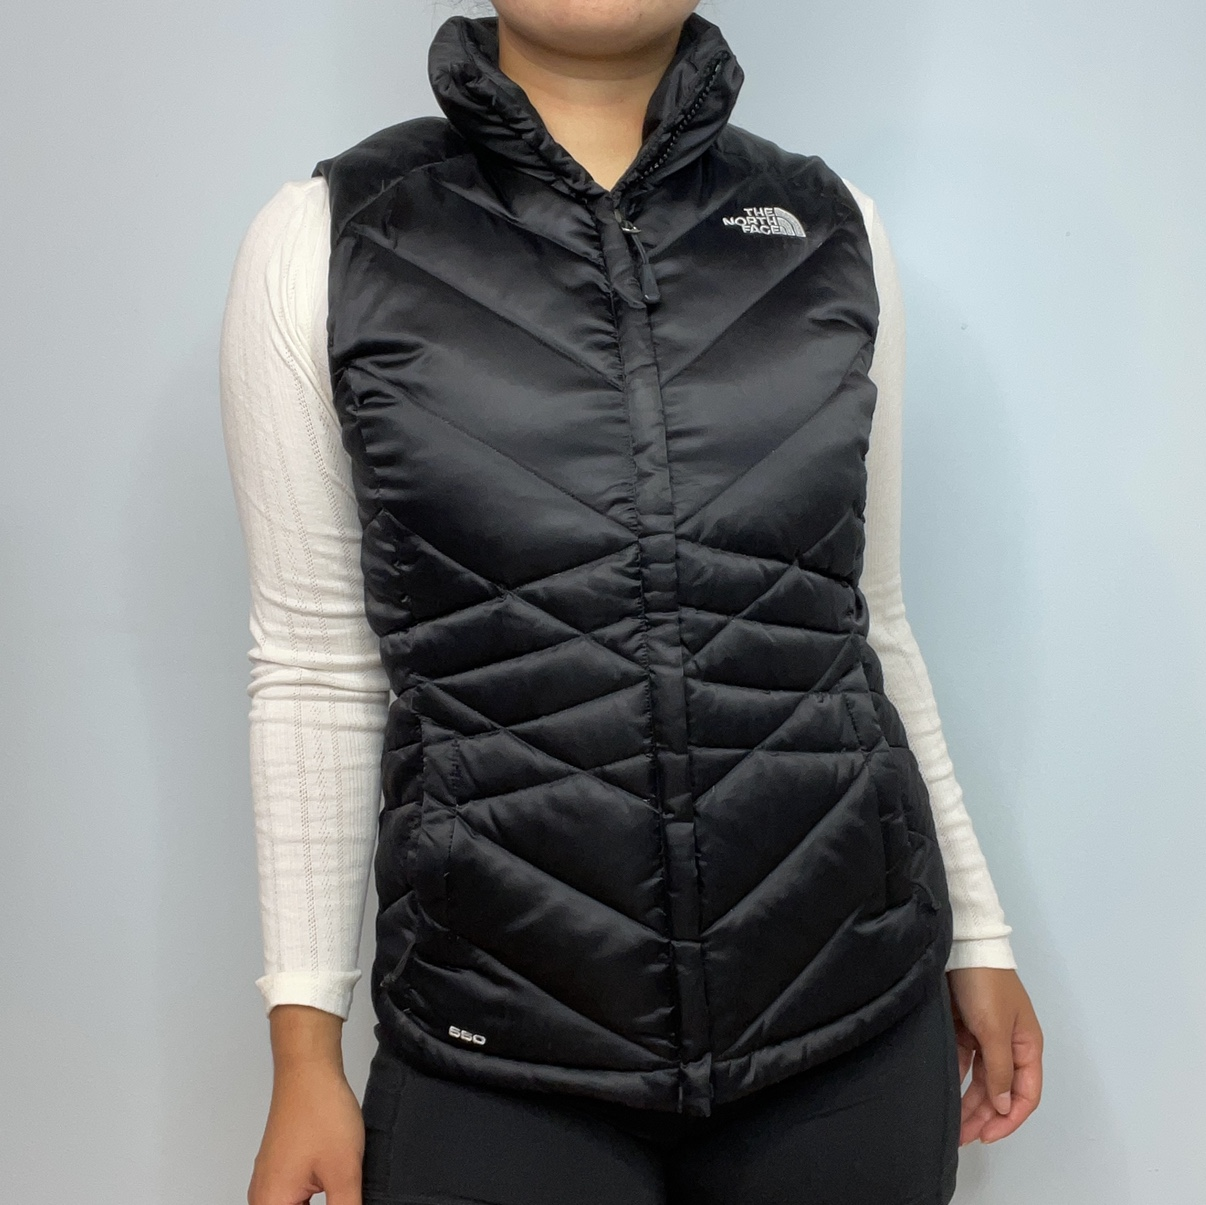 Product Image 1 - NORTH FACE PUFFER JACKET Size small In